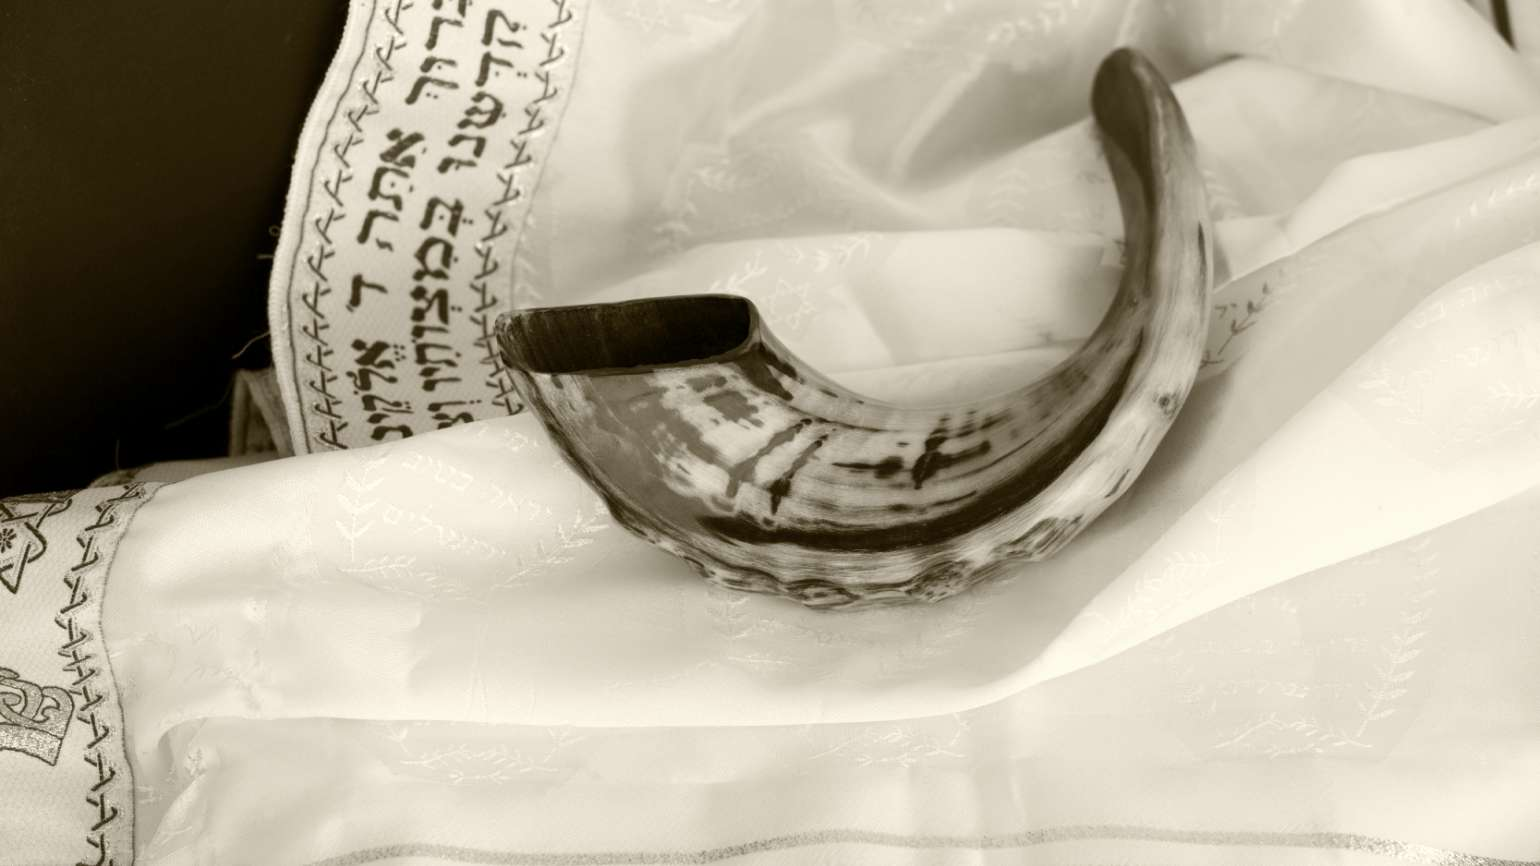 The Shofar (ram's horn) is blown during services on Yom Kippur.